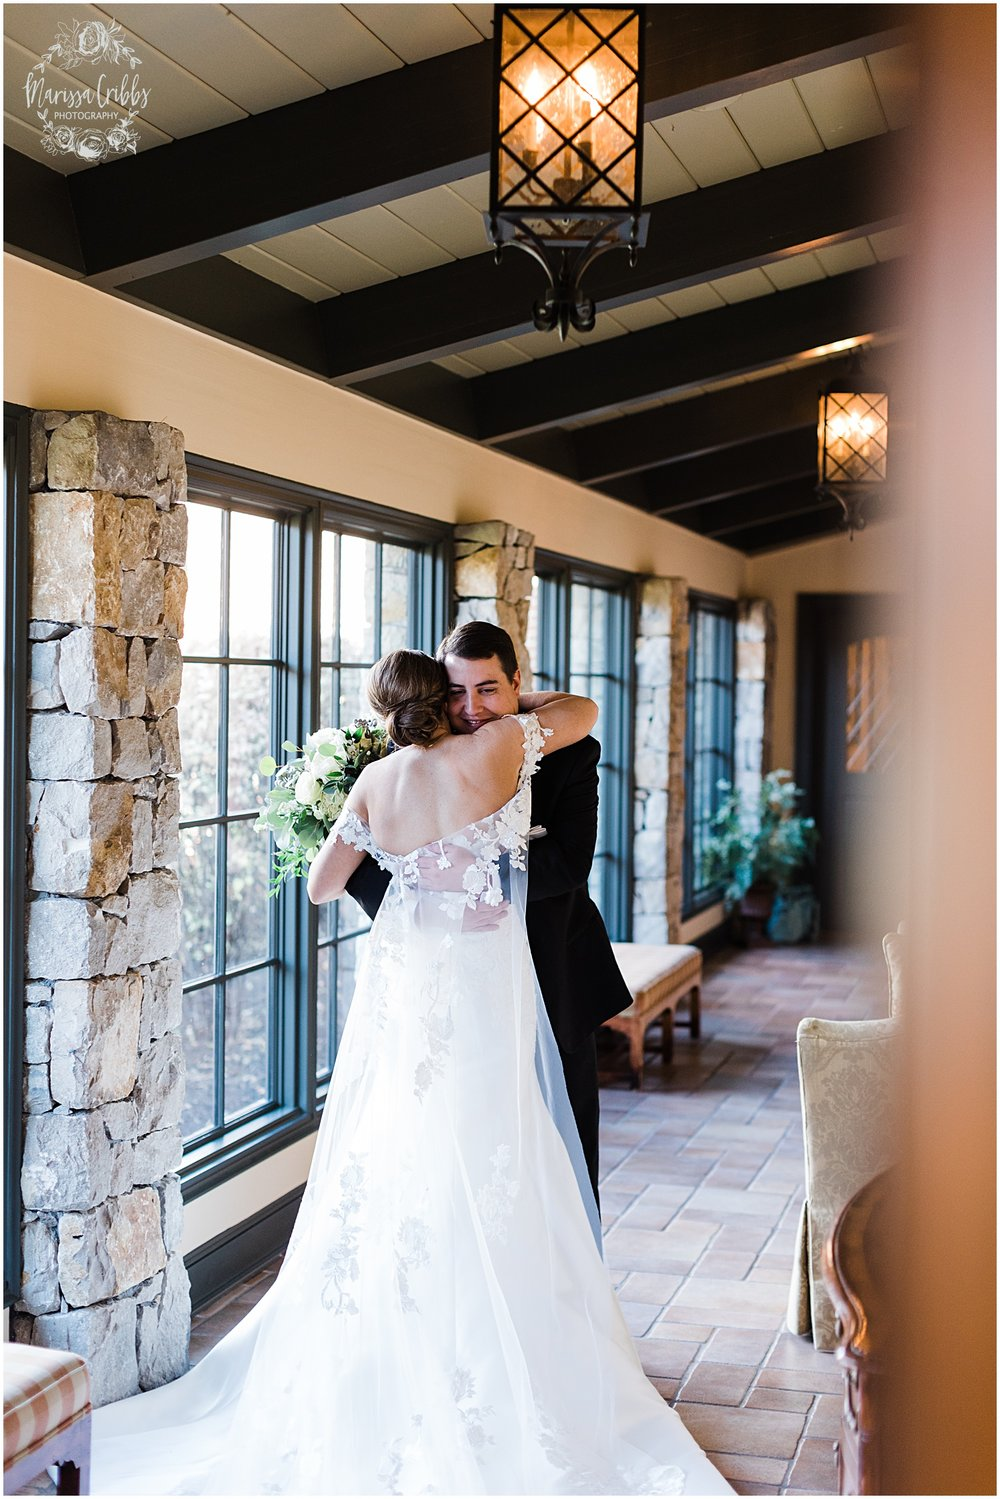 JOE & CAROLINE MARRIED | INDIAN HILLS COUNTRY CLUB | MARISSA CRIBBS PHOTOGRAPHY_7187.jpg